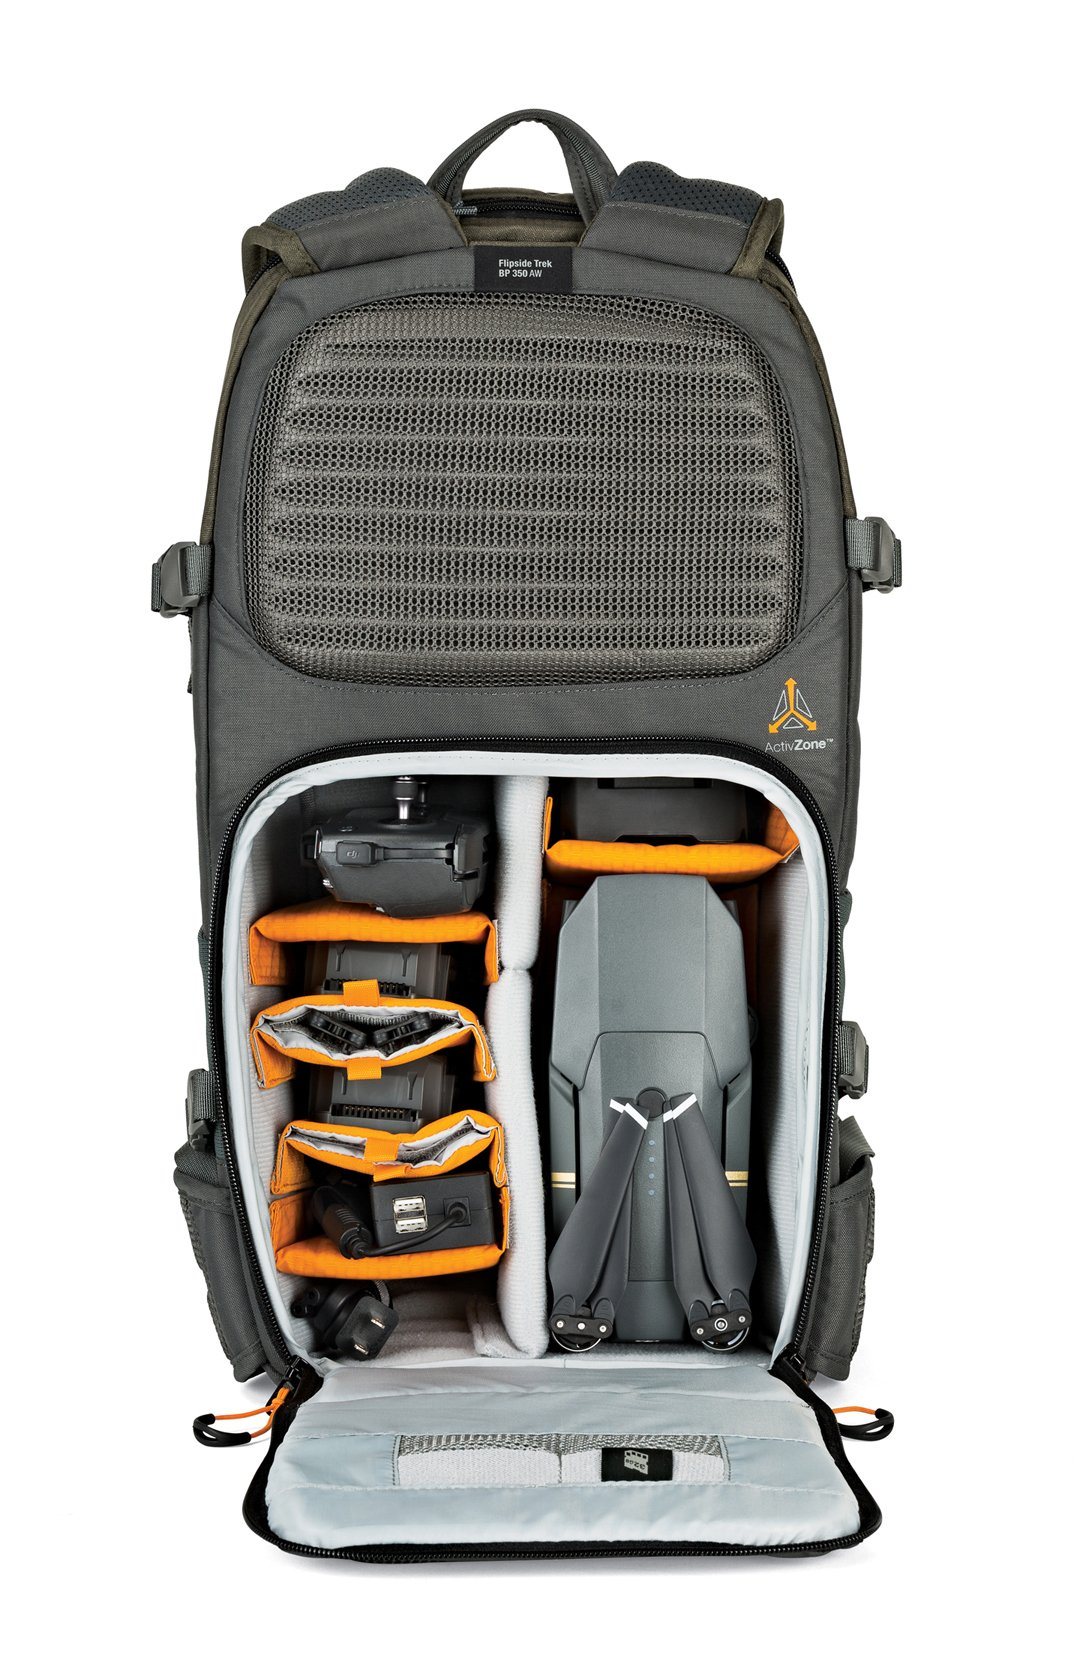 Lowepro Flipside Trek BP 350 AW. Large Outdoor Camera Backpack for DSLR and DJI Mavic Pro Drone w/ Rain Cover and Tablet Pocket by Lowepro (Image #5)